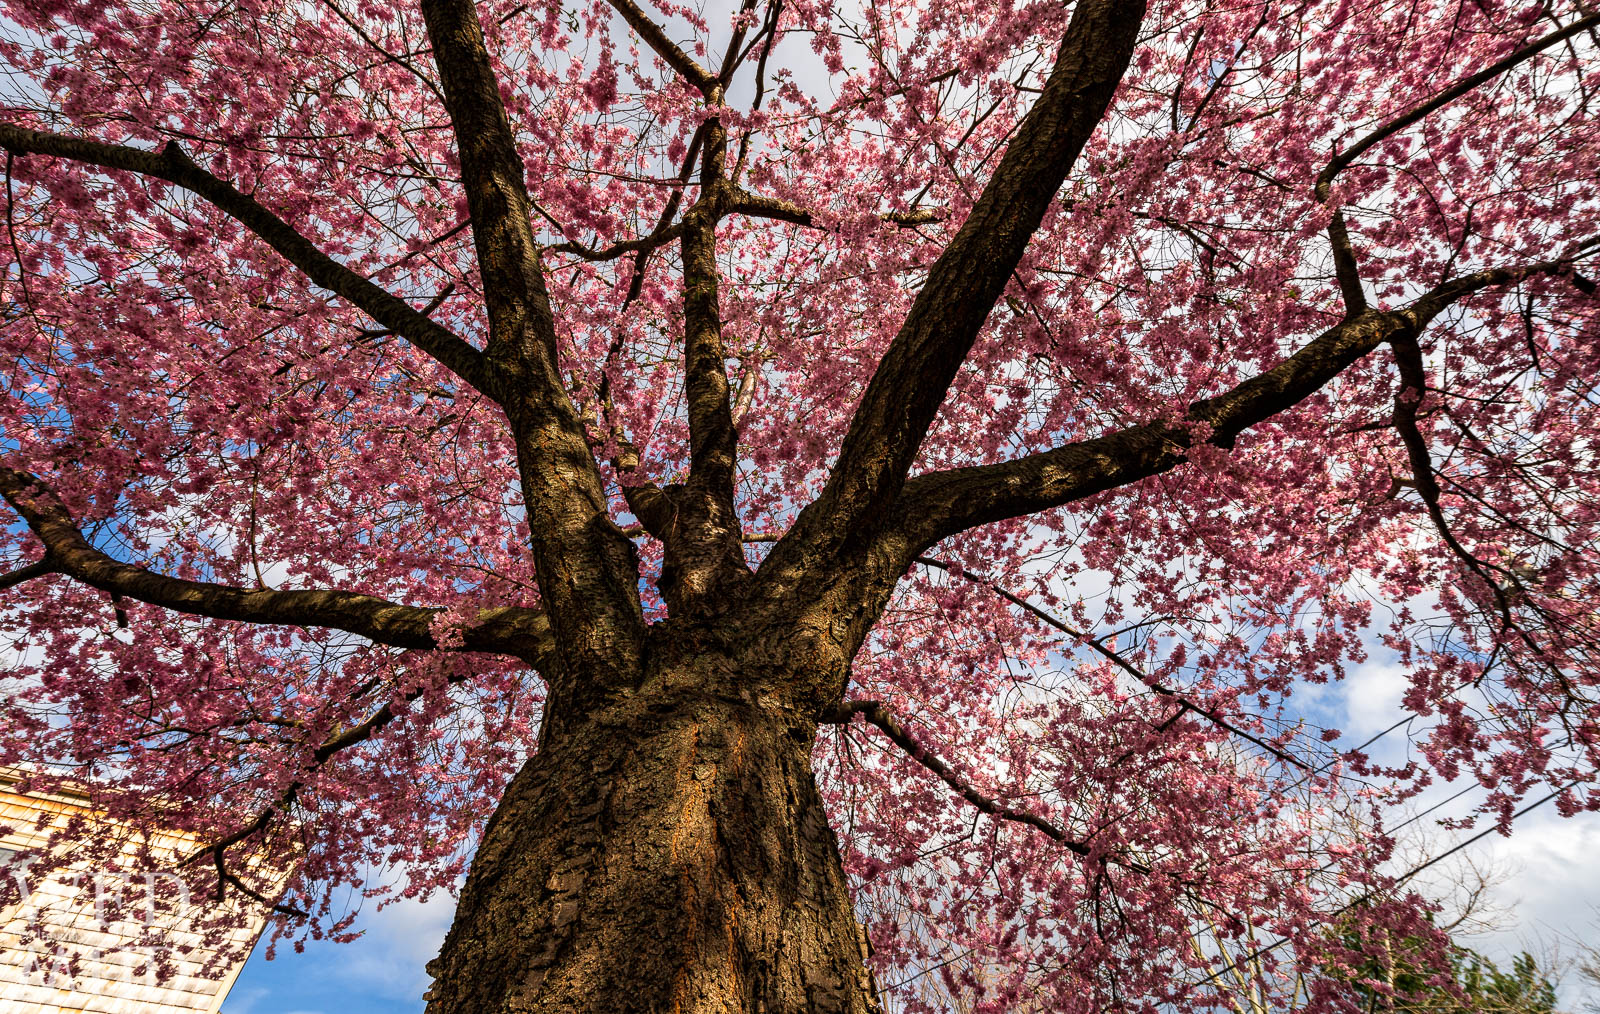 Staring up at a full canopy of cherry blossoms in the Harris Street cemetery as the trees reach peak bloom on a mid April evening in Marblehead